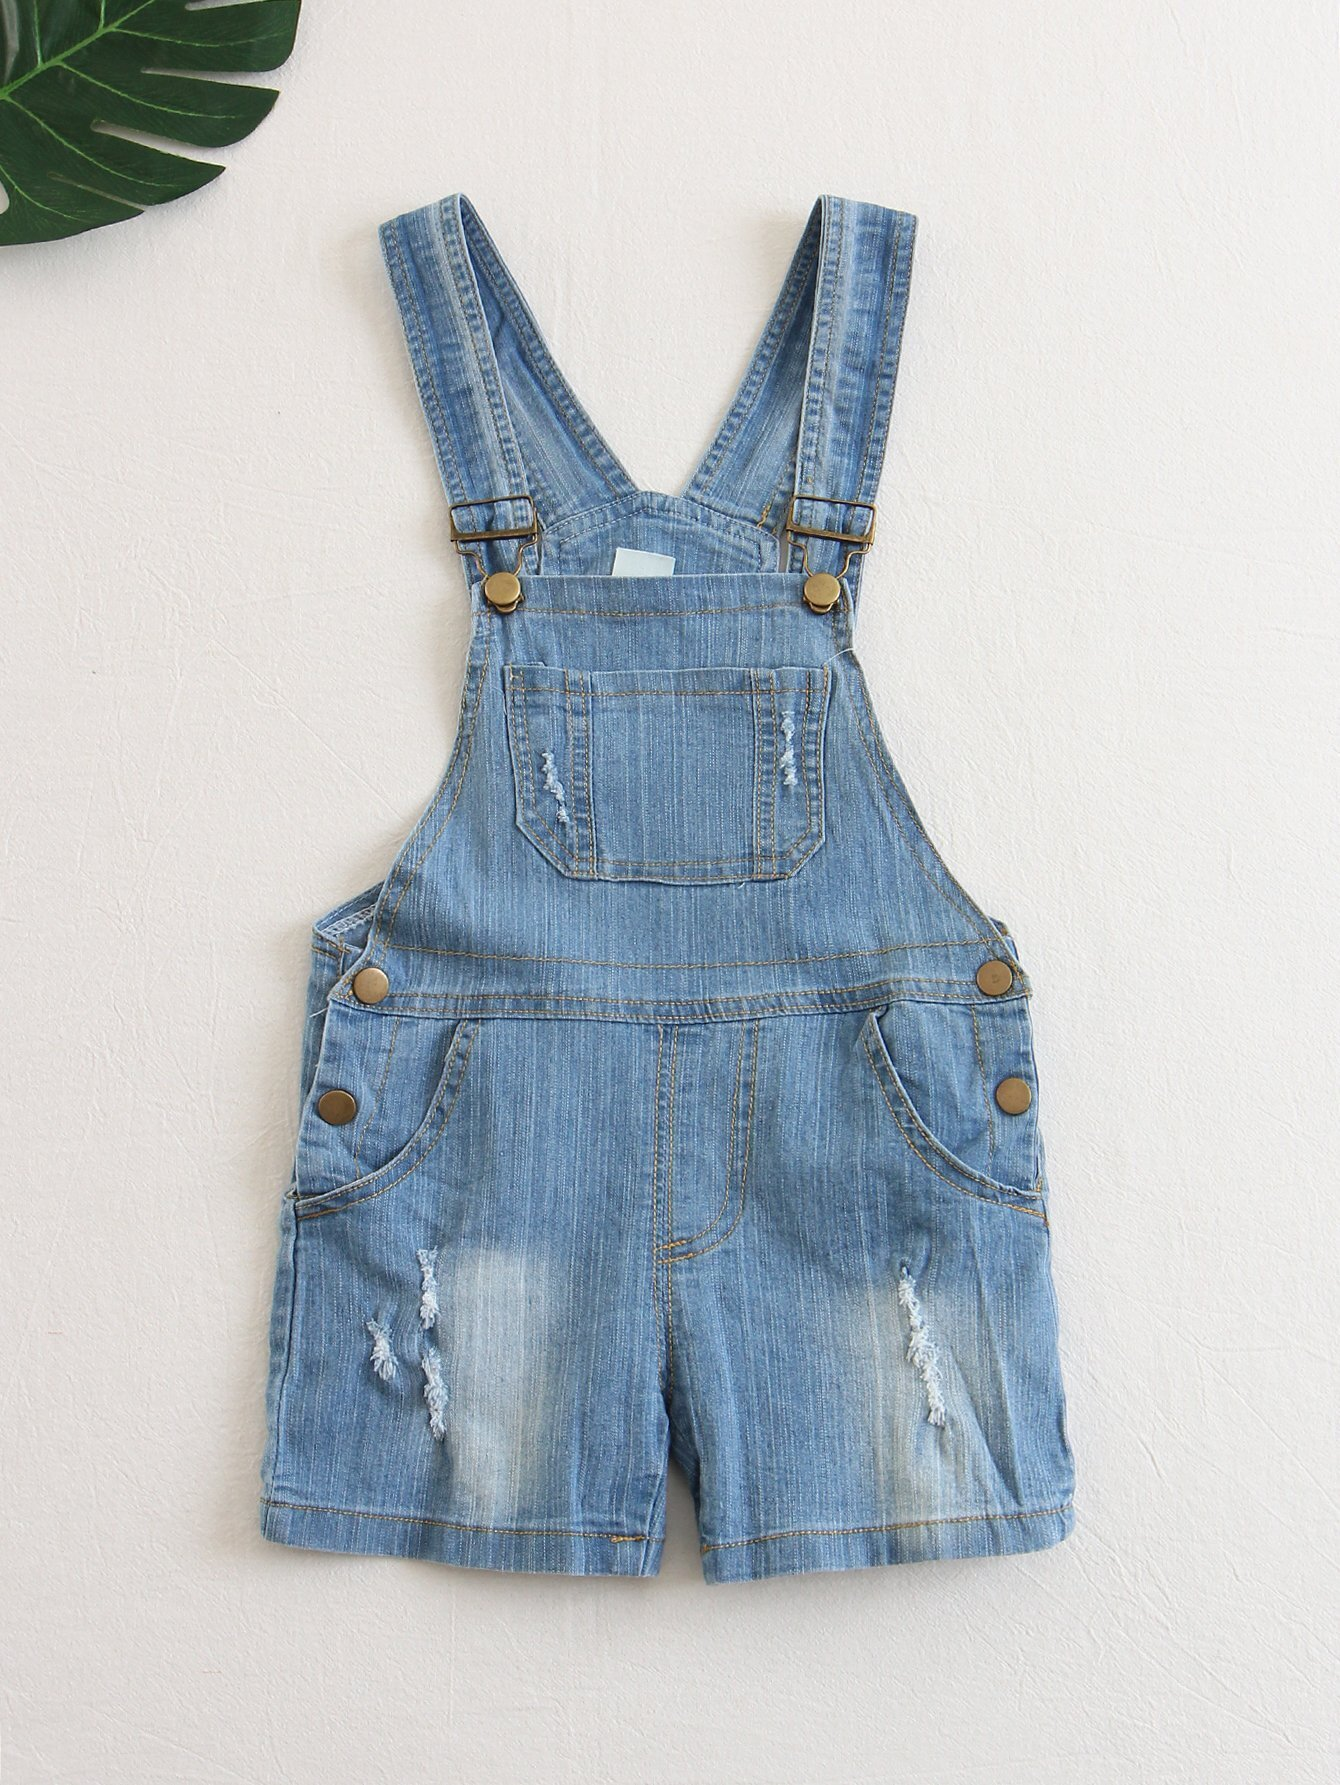 Pocket Front Denim Overall Shorts overall yumi overall